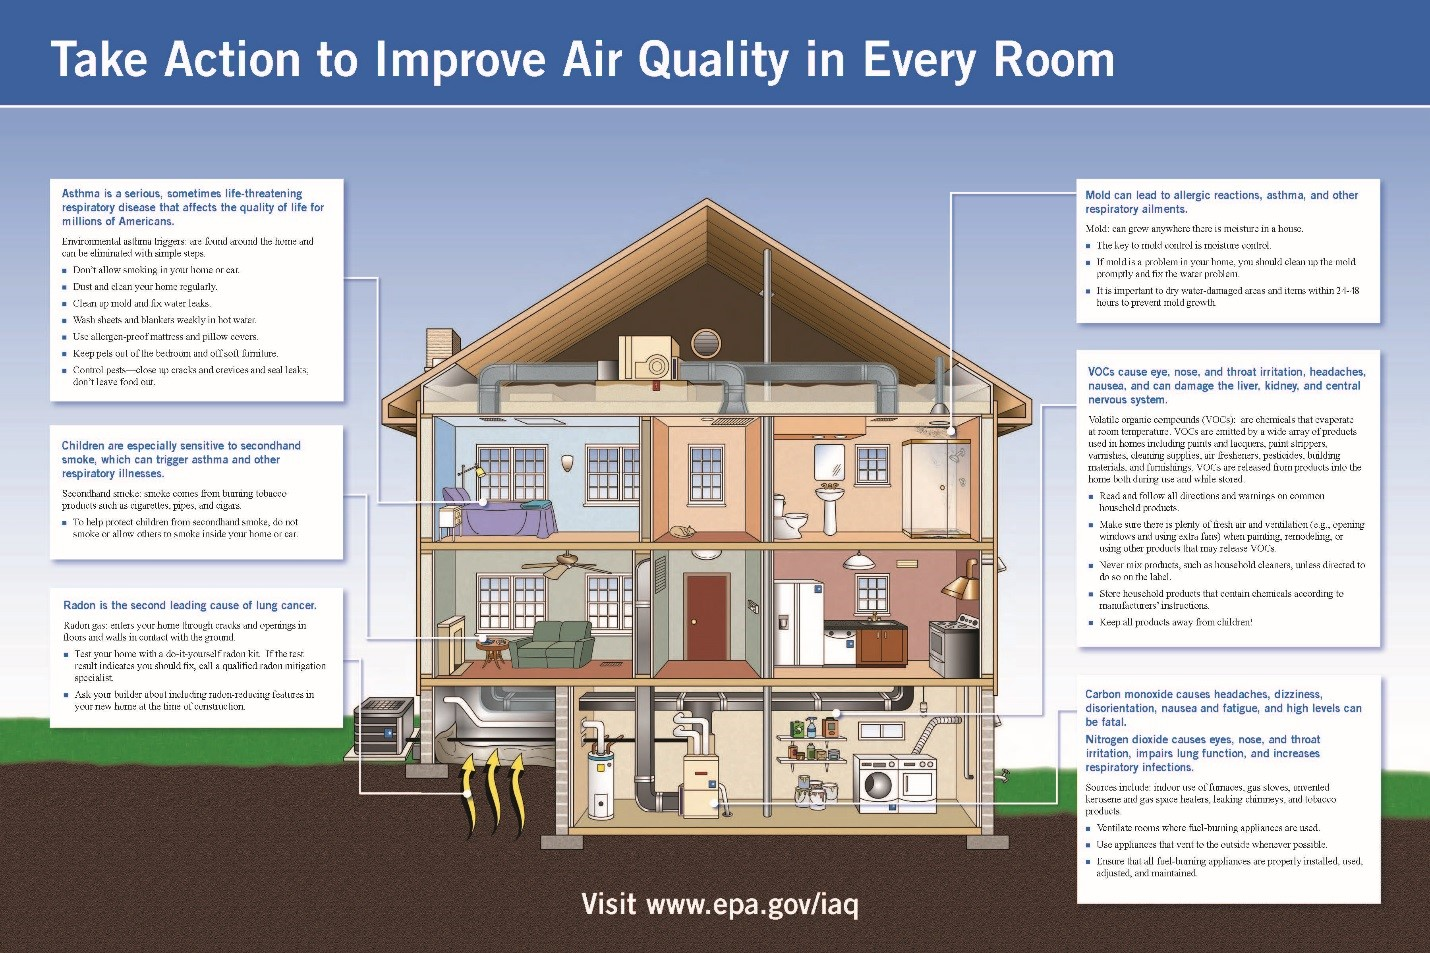 Be Sure To Install Fans And Air Conditioners In Areas That Tend Trap Humidity Order Prevent The Growth Of Mold Other Harmful Spores